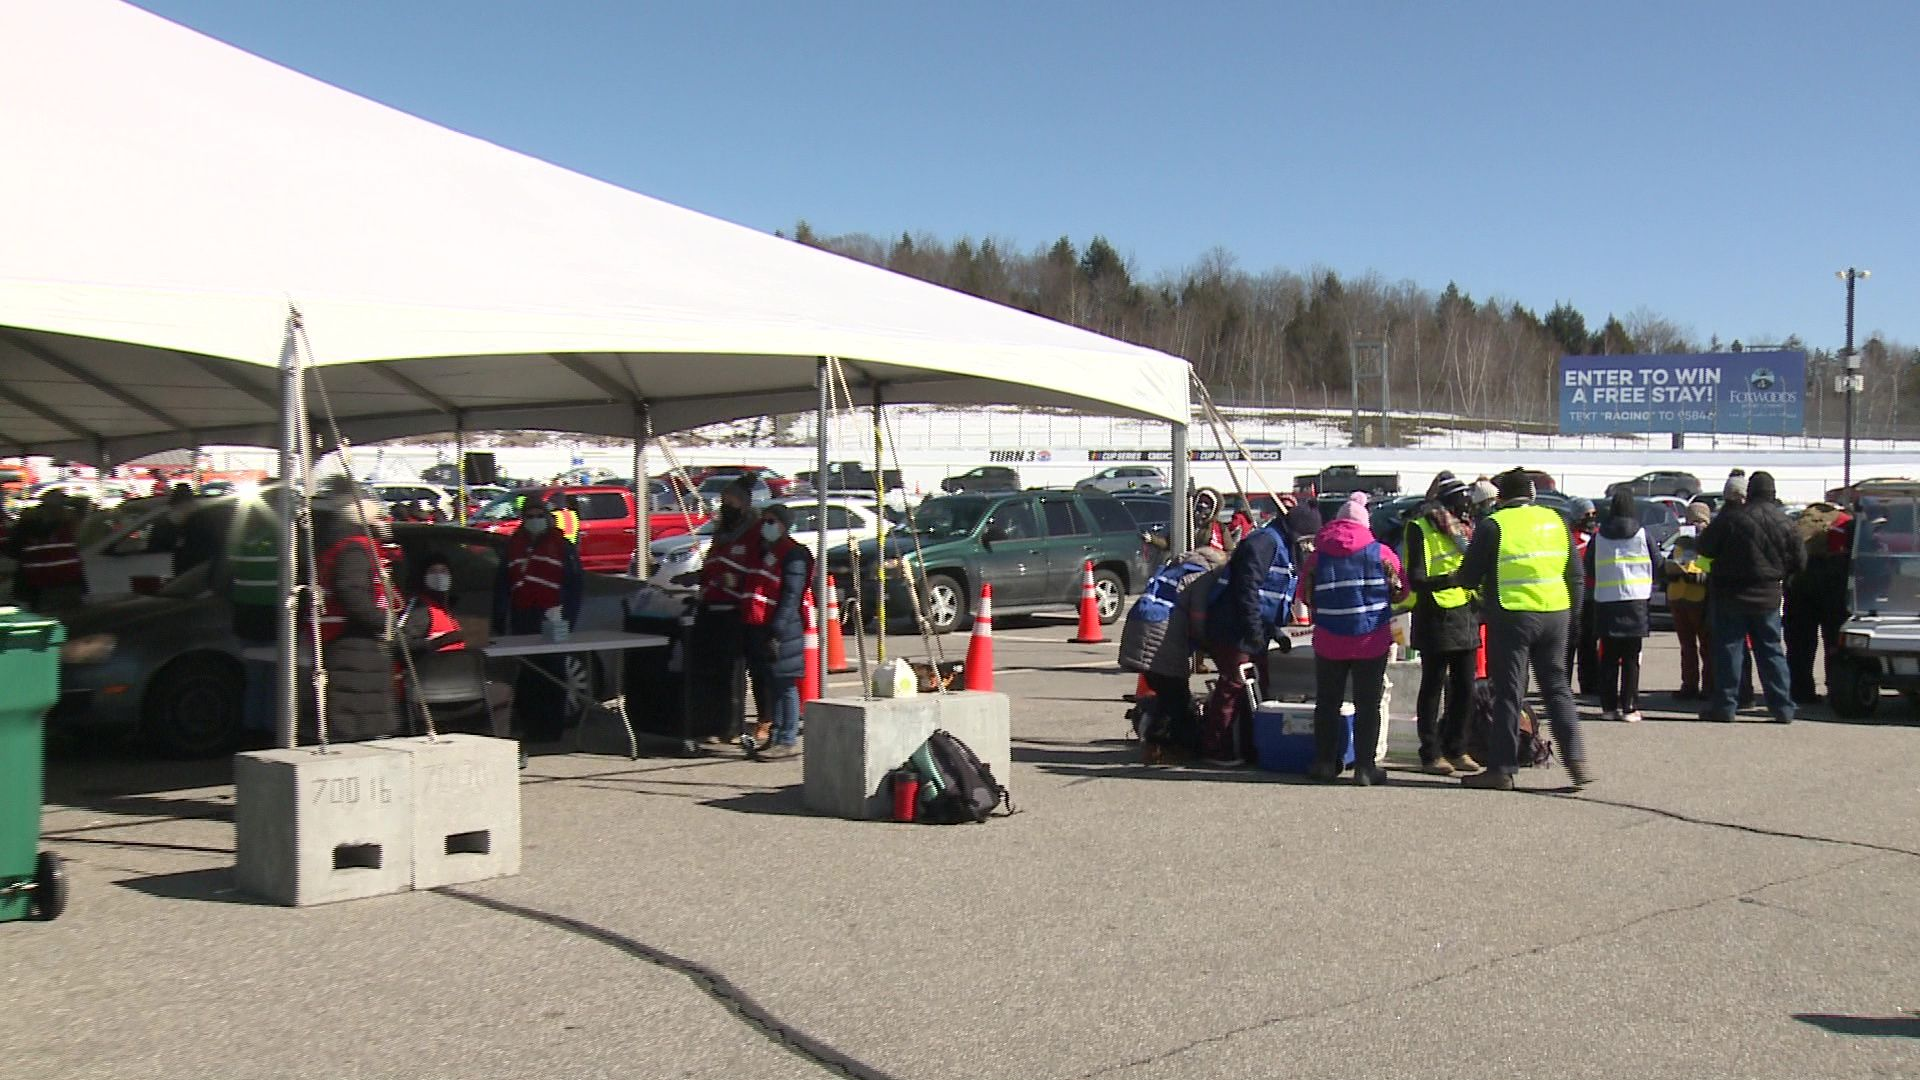 Some wait hours as thousands receive vaccinations at New England race track